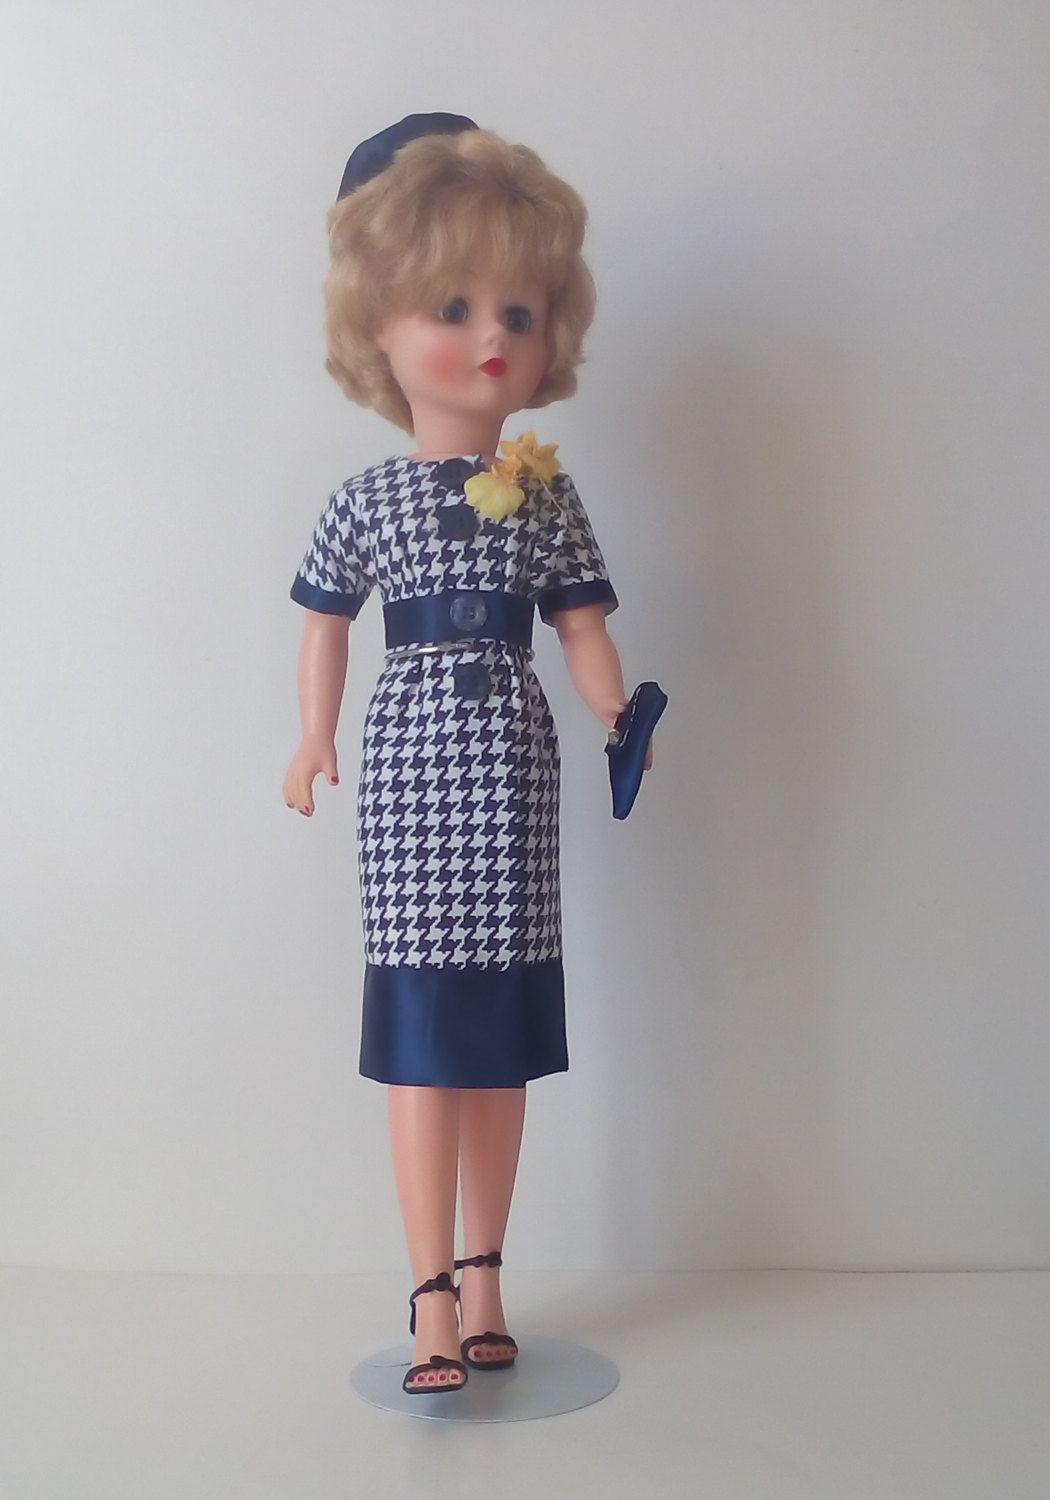 Blue and white houndstooth print dress with matching pillbox hat and handbag for 18 inch Miss Revlon doll and friends. by DollieFashionsbyEl on Etsy